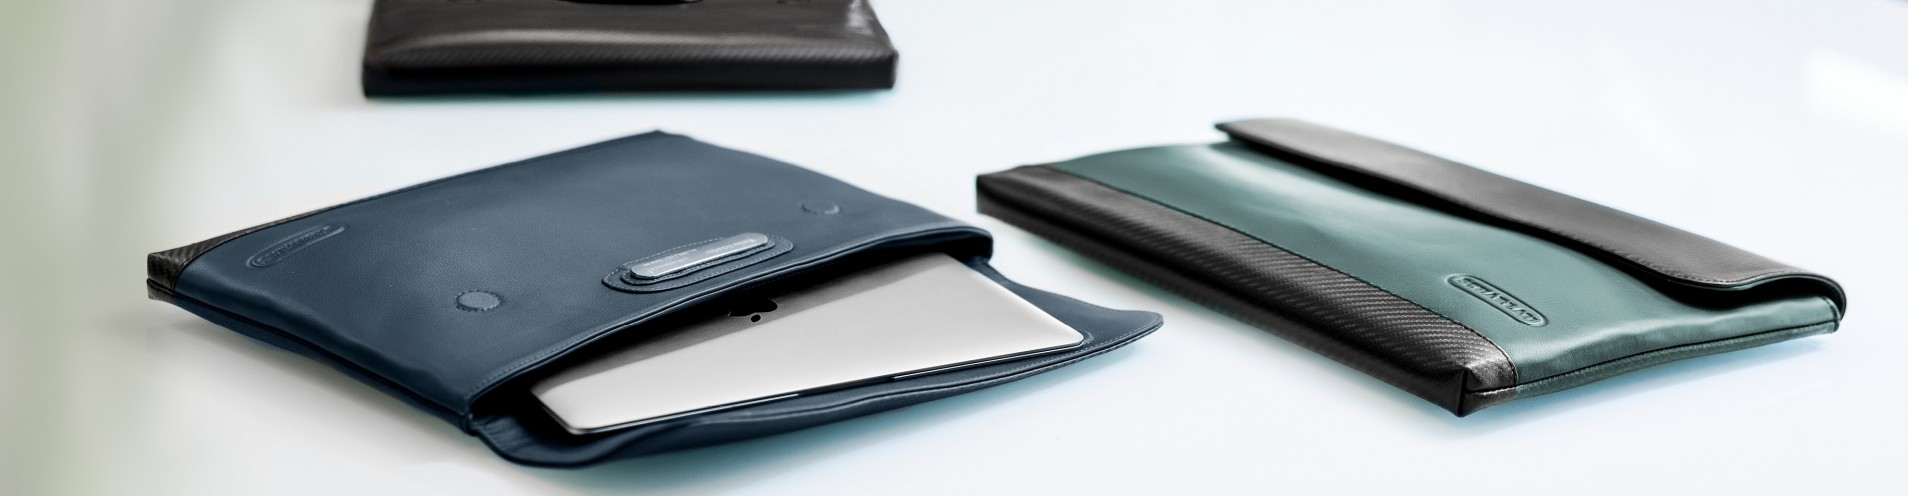 Portable Mobile Power Bank for iOS and Android